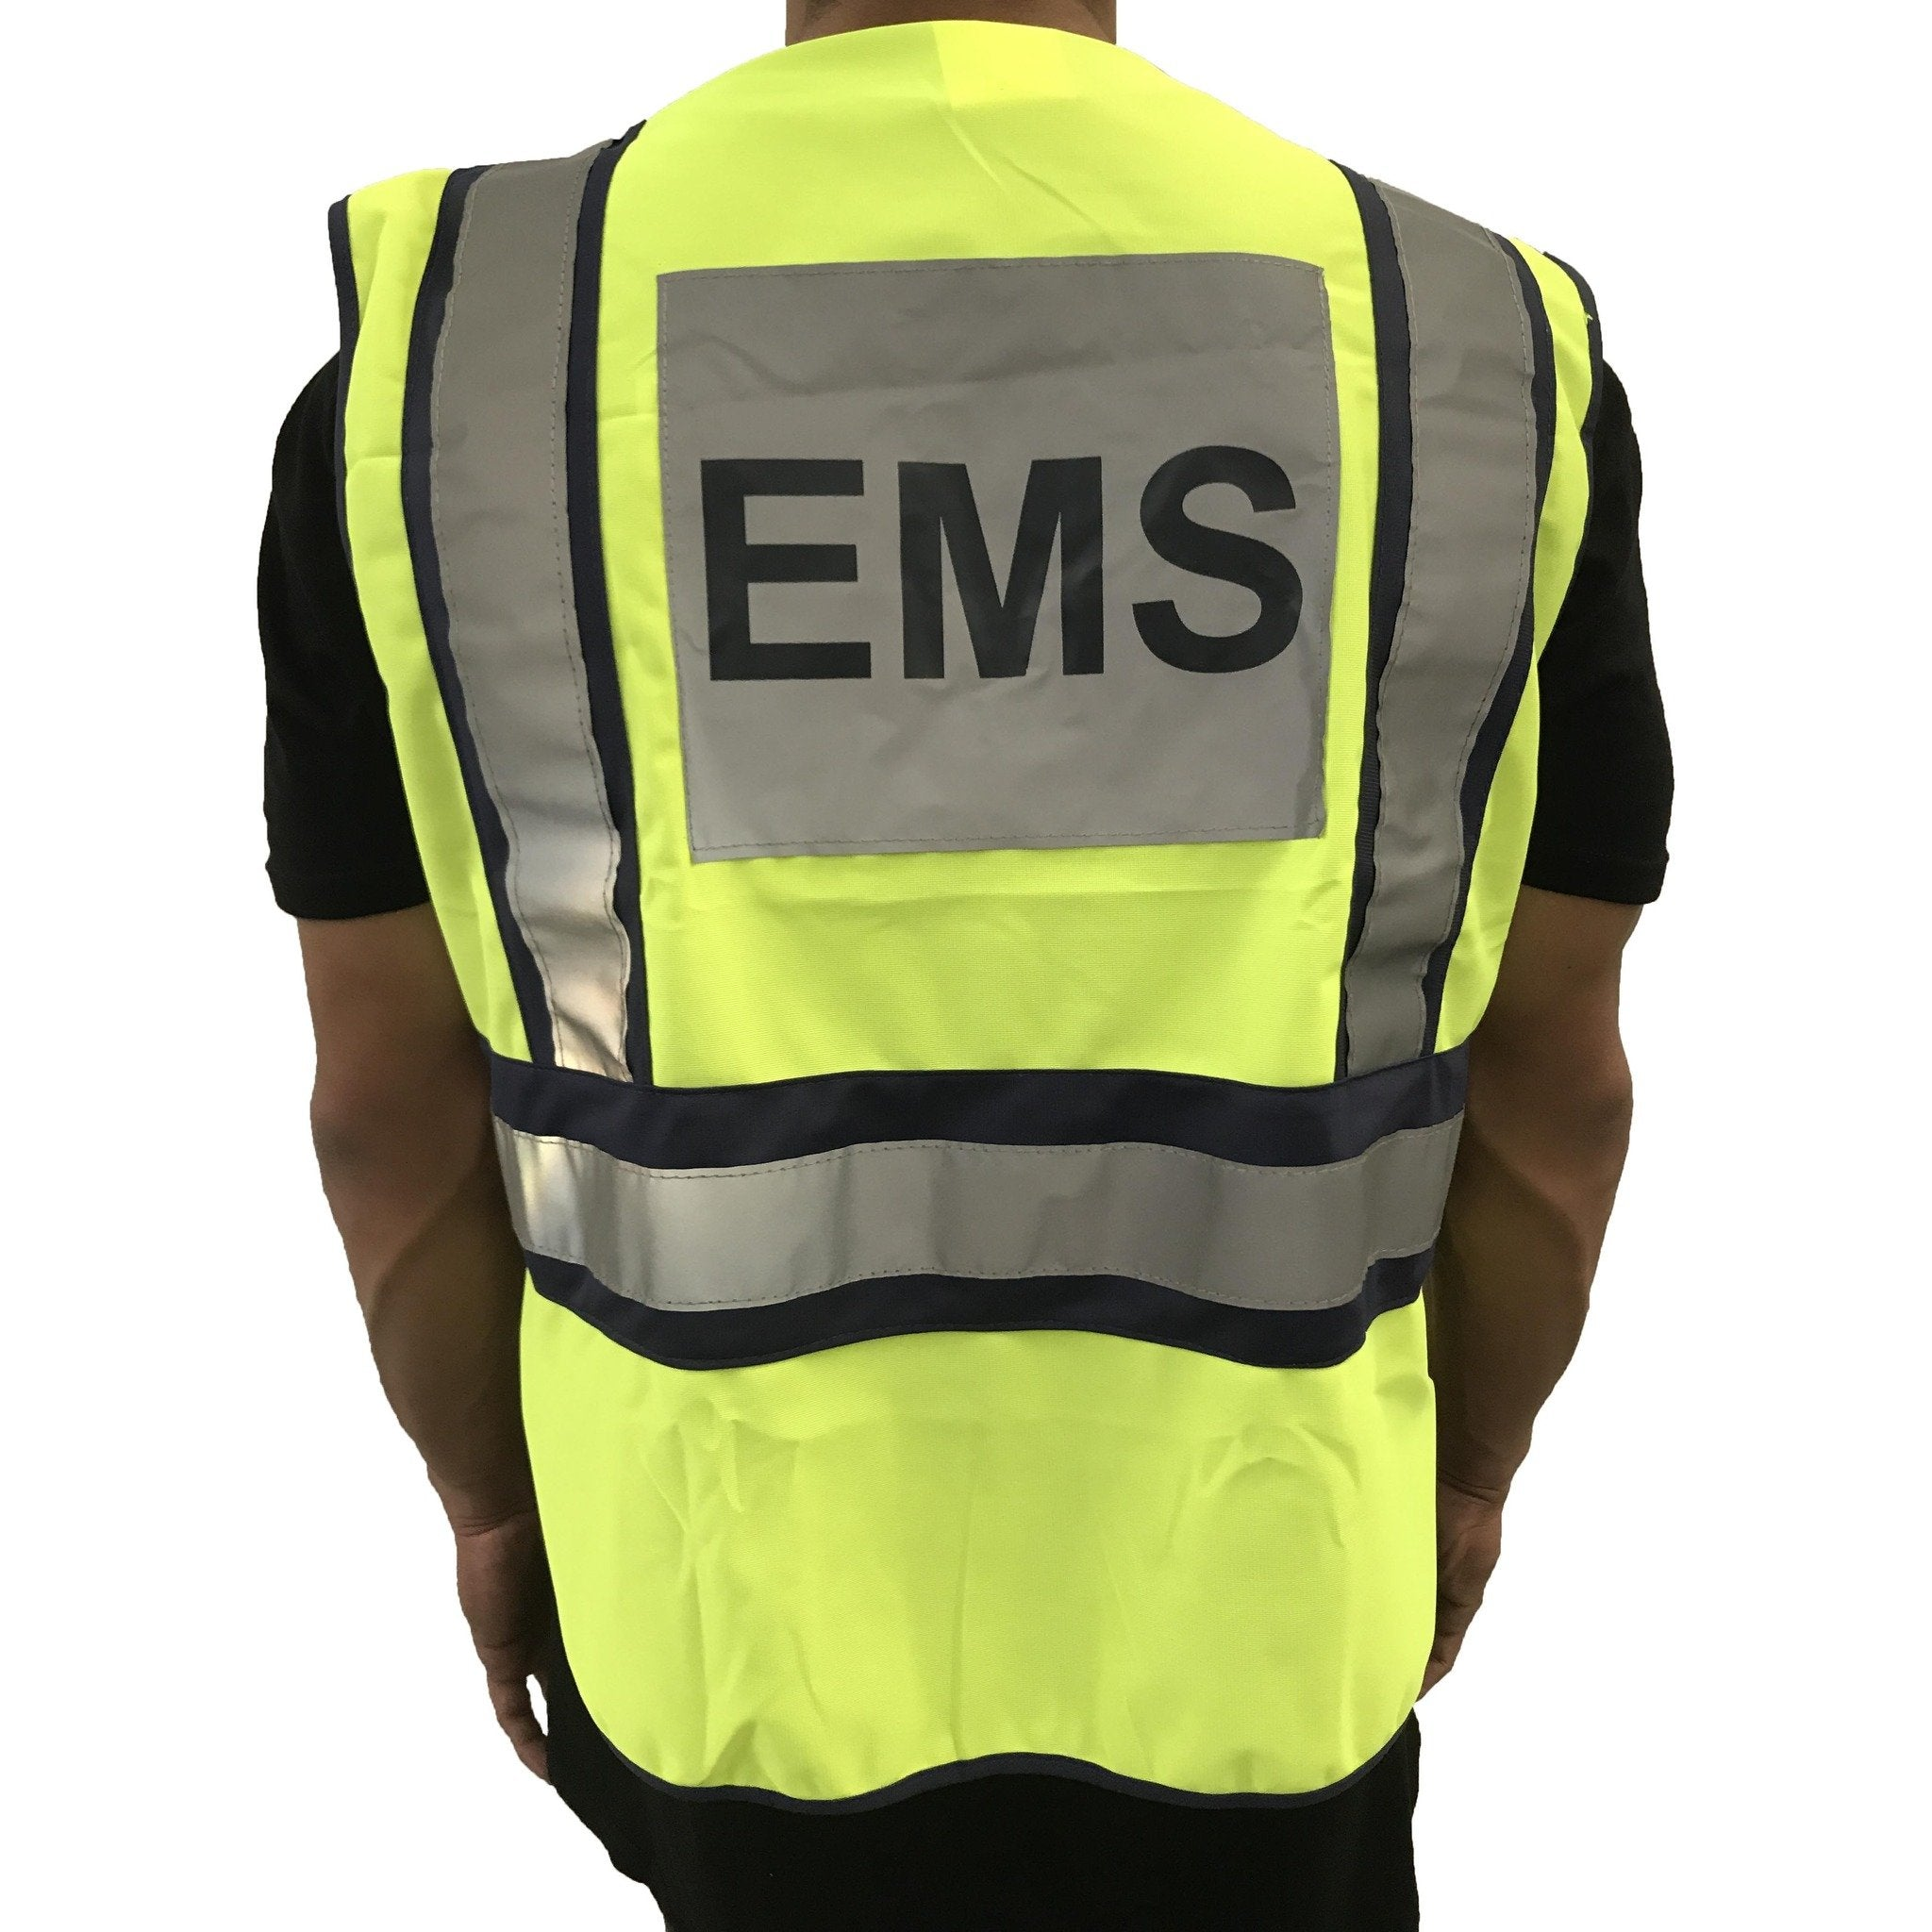 LINE2design EMS Safety Vest ANSI Polyester Fabric Yellow with Reflective Trim, Outlined in Navy